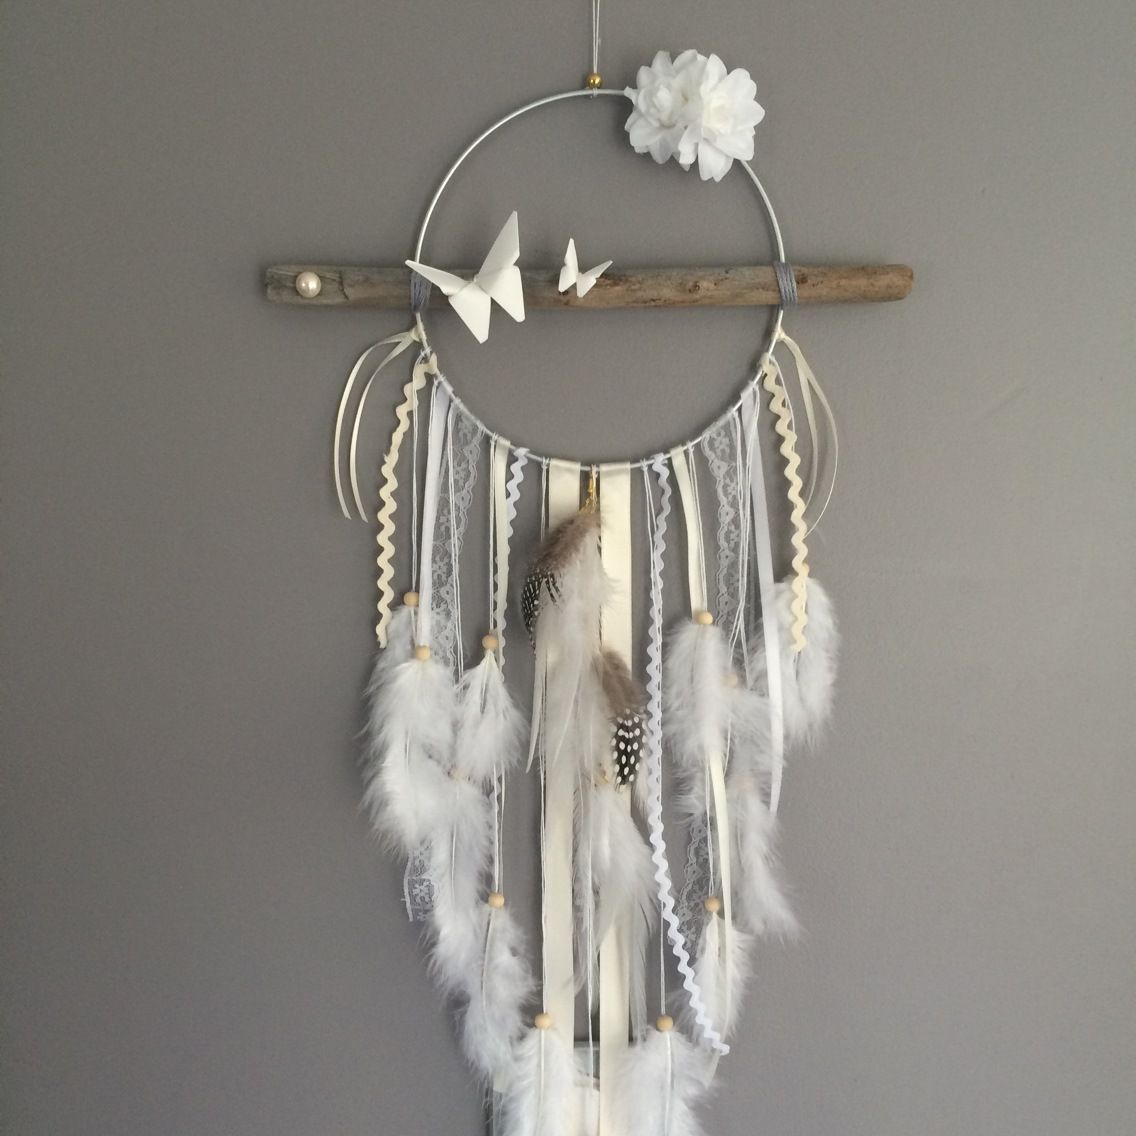 Attrape r ves dreamcatcher attrapeur de r ves en bois for Decor mural bois flotte